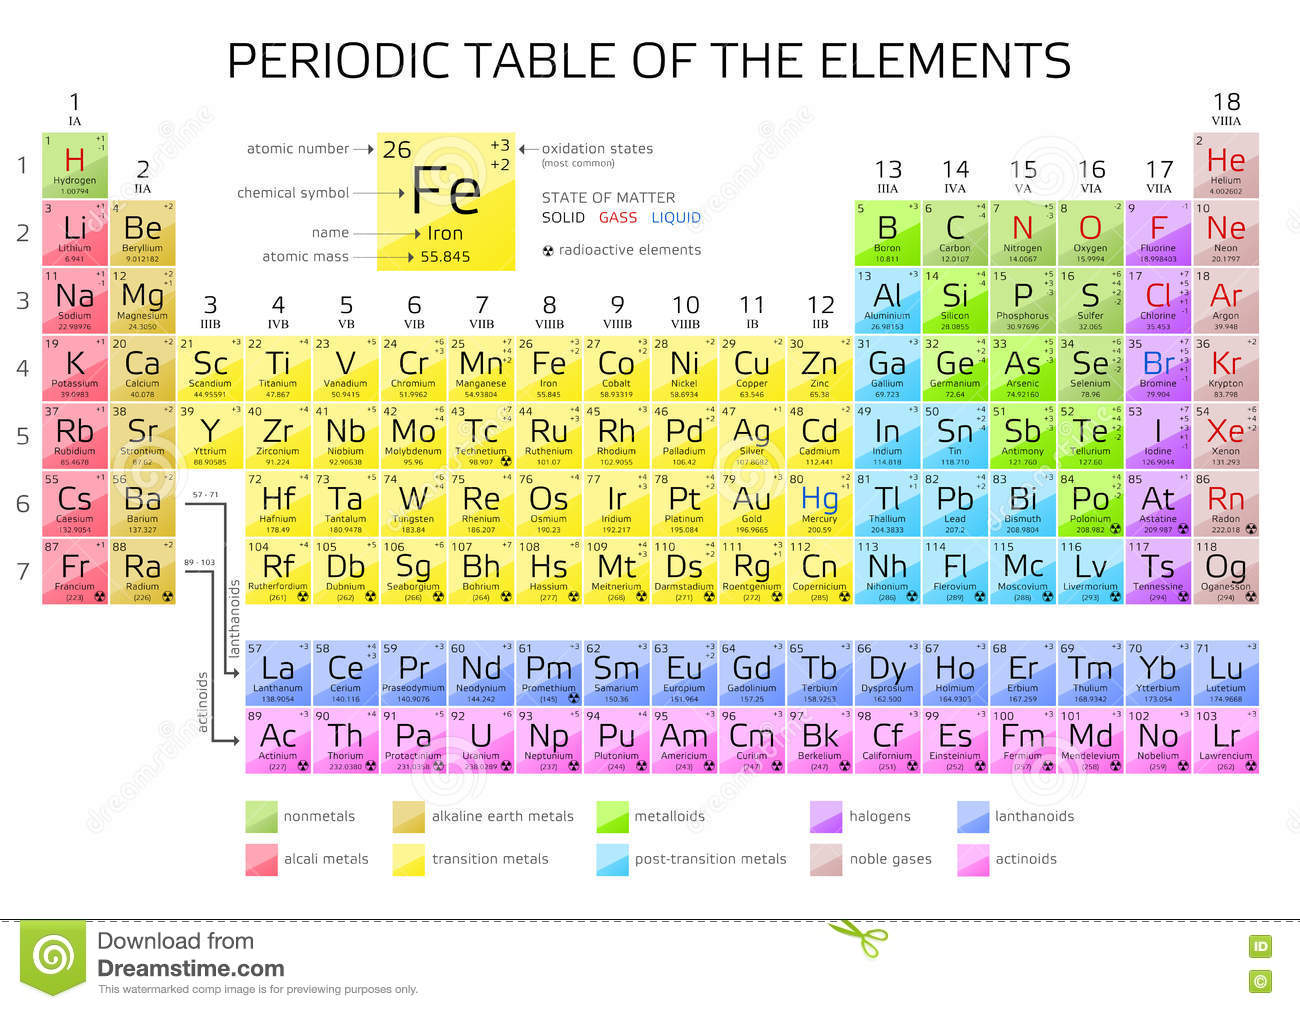 mendeleevs periodic table of elements with new elements 2016 royalty free stock photography - Periodic Table Of Elements Vector Free